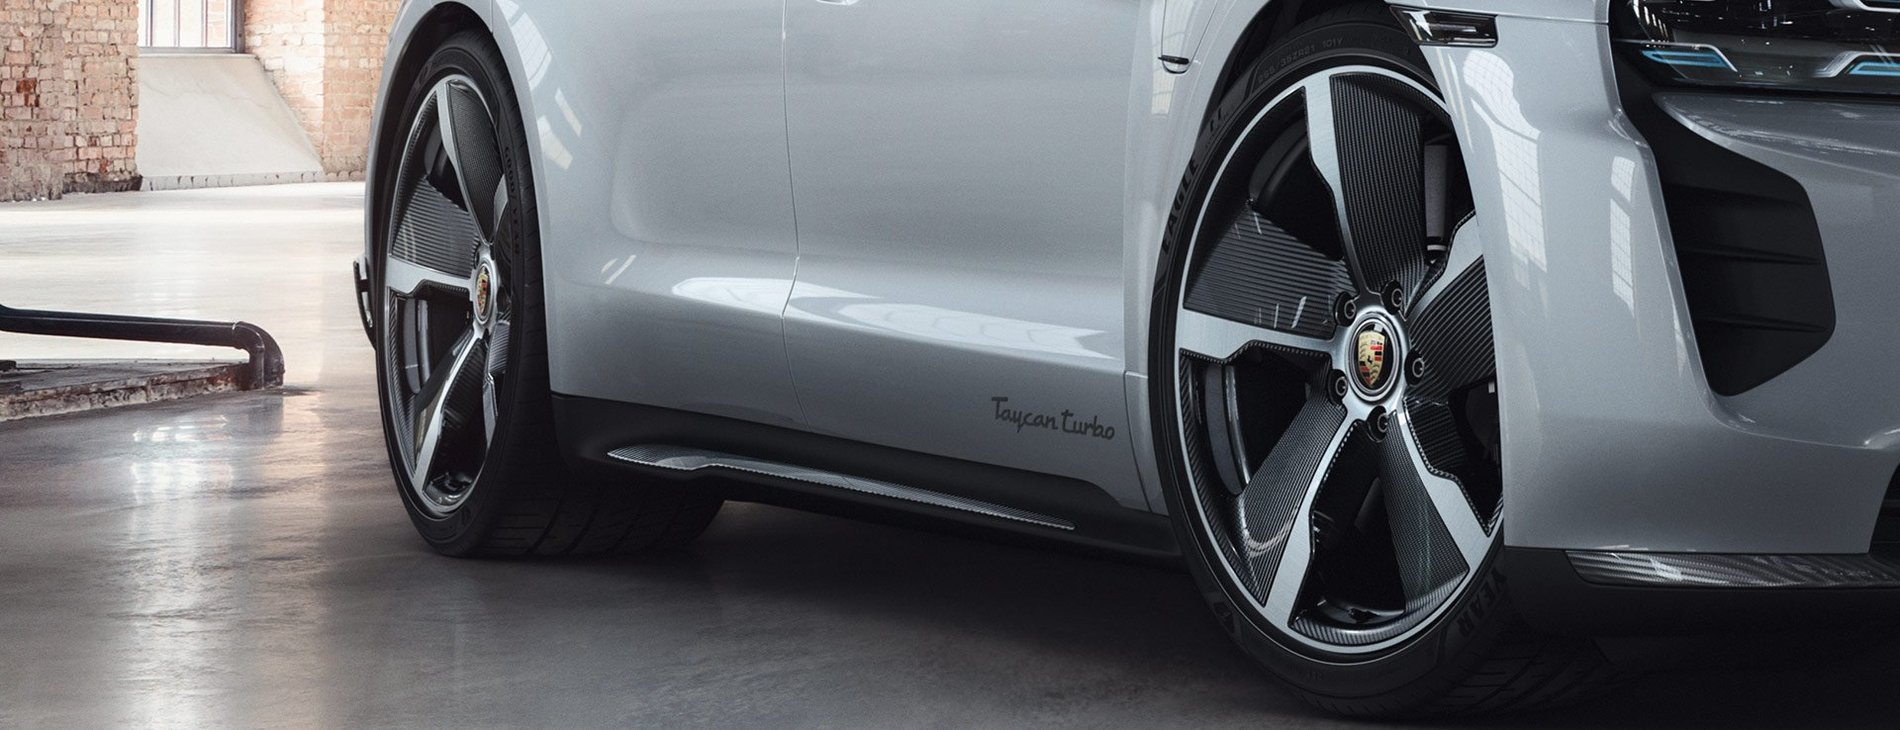 Porsche-Exclusive-Taycan-Turbo-11.jpg